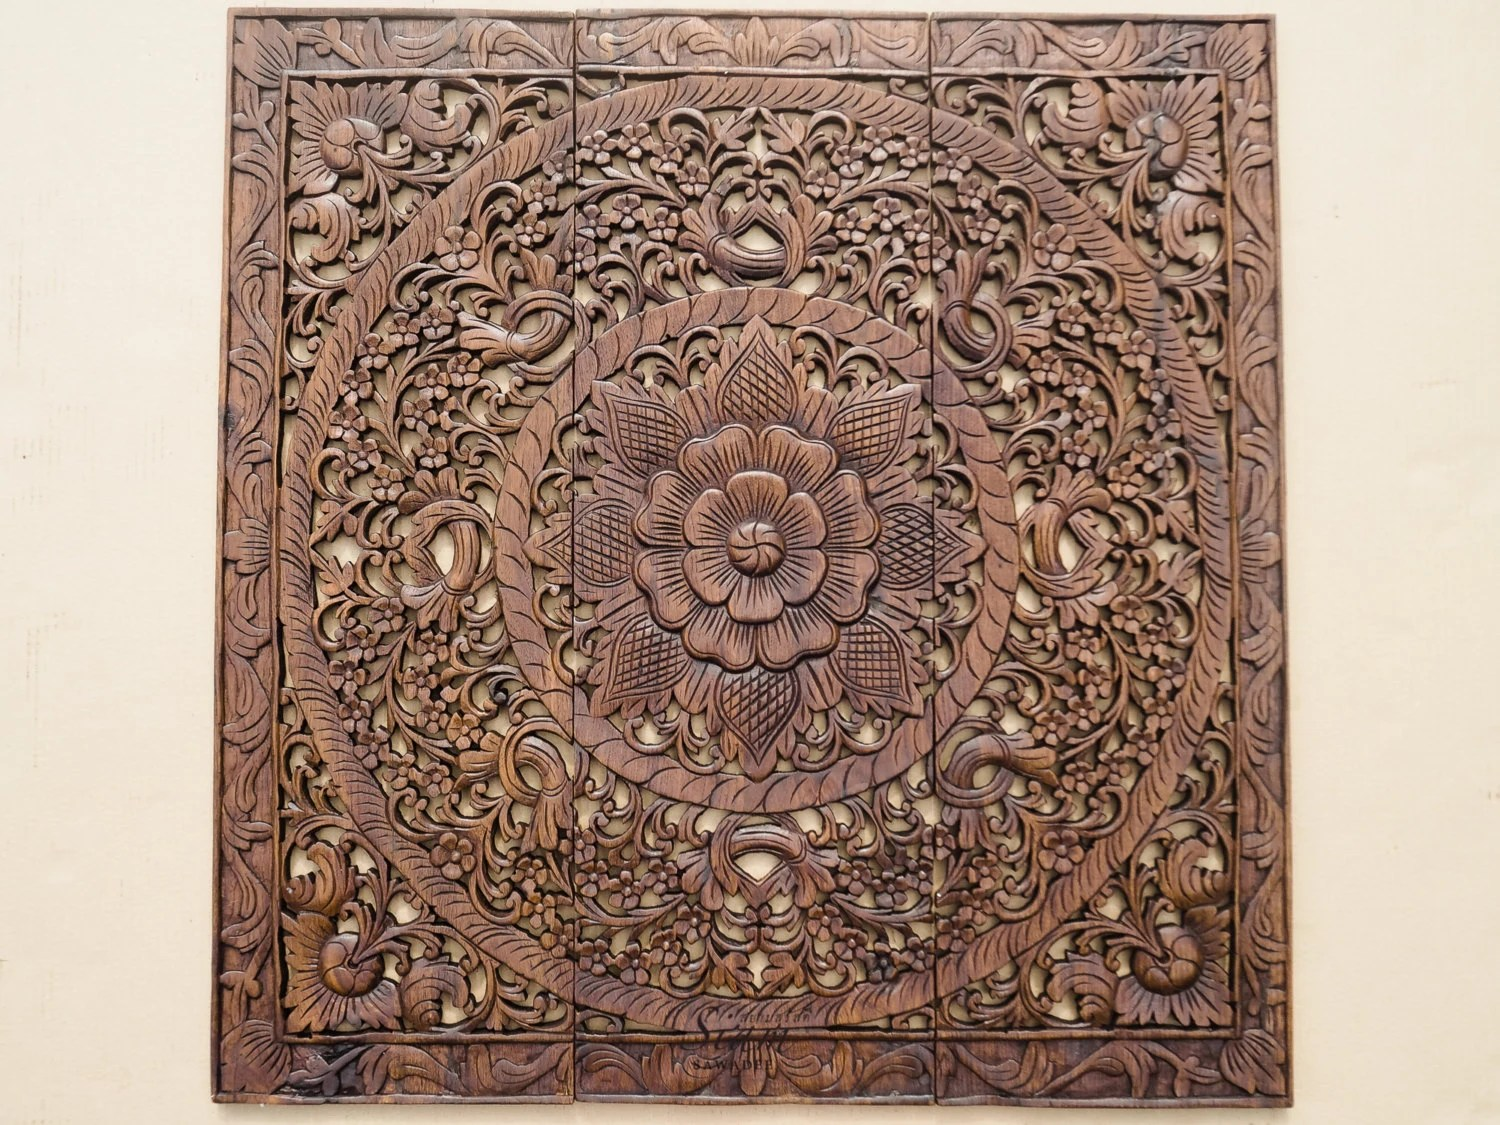 Wall Art Decor. Carved Wood Panel. Asian Home by SiamSawadee